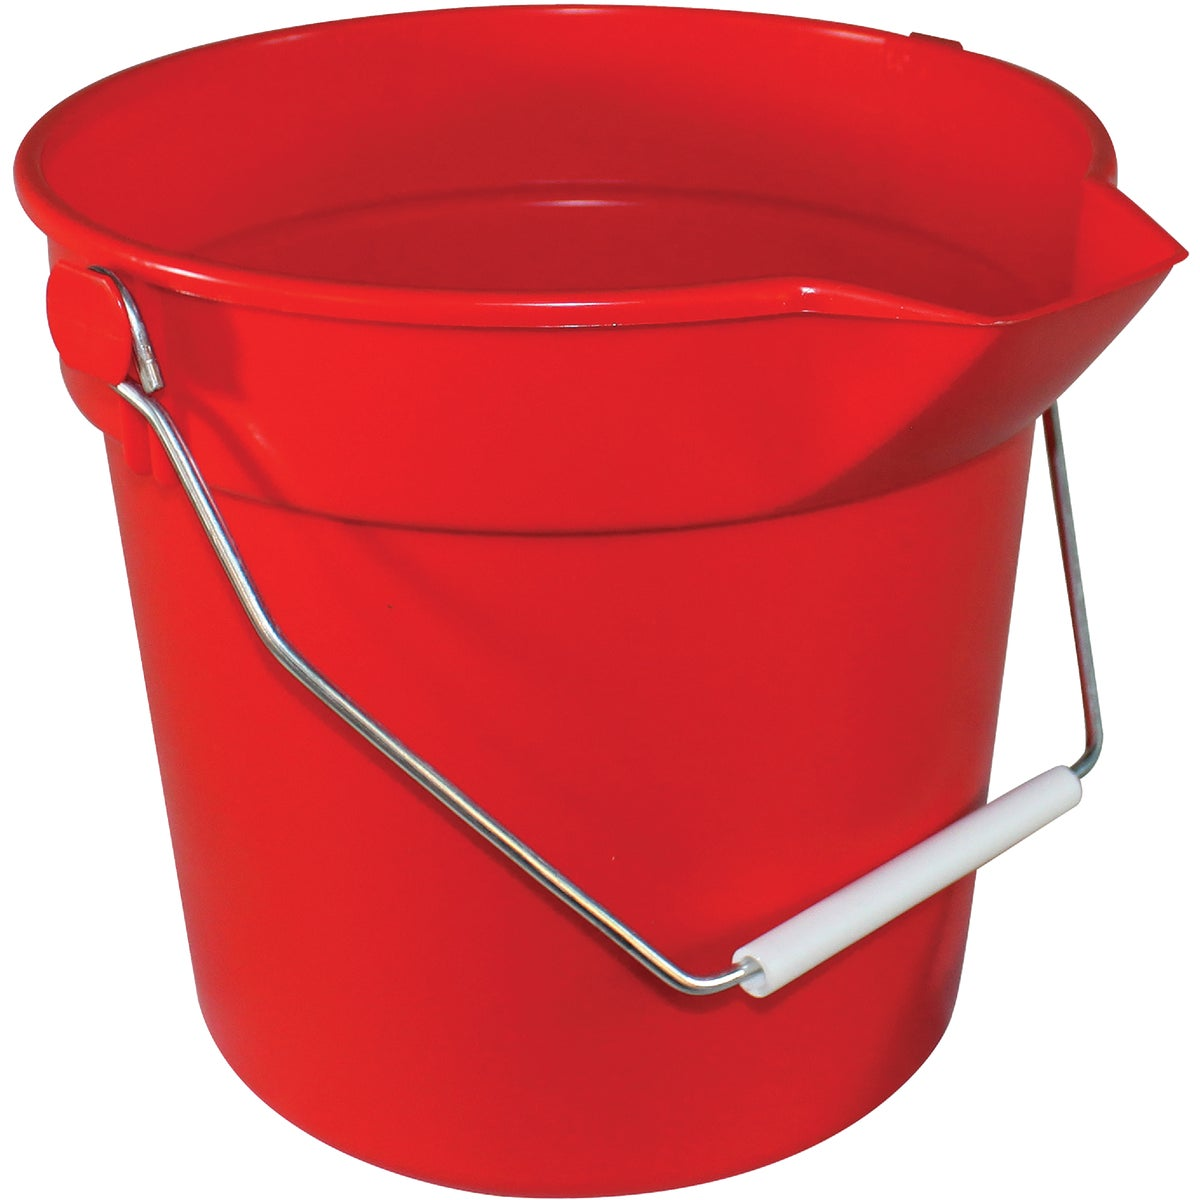 10 QUART RED BUCKET